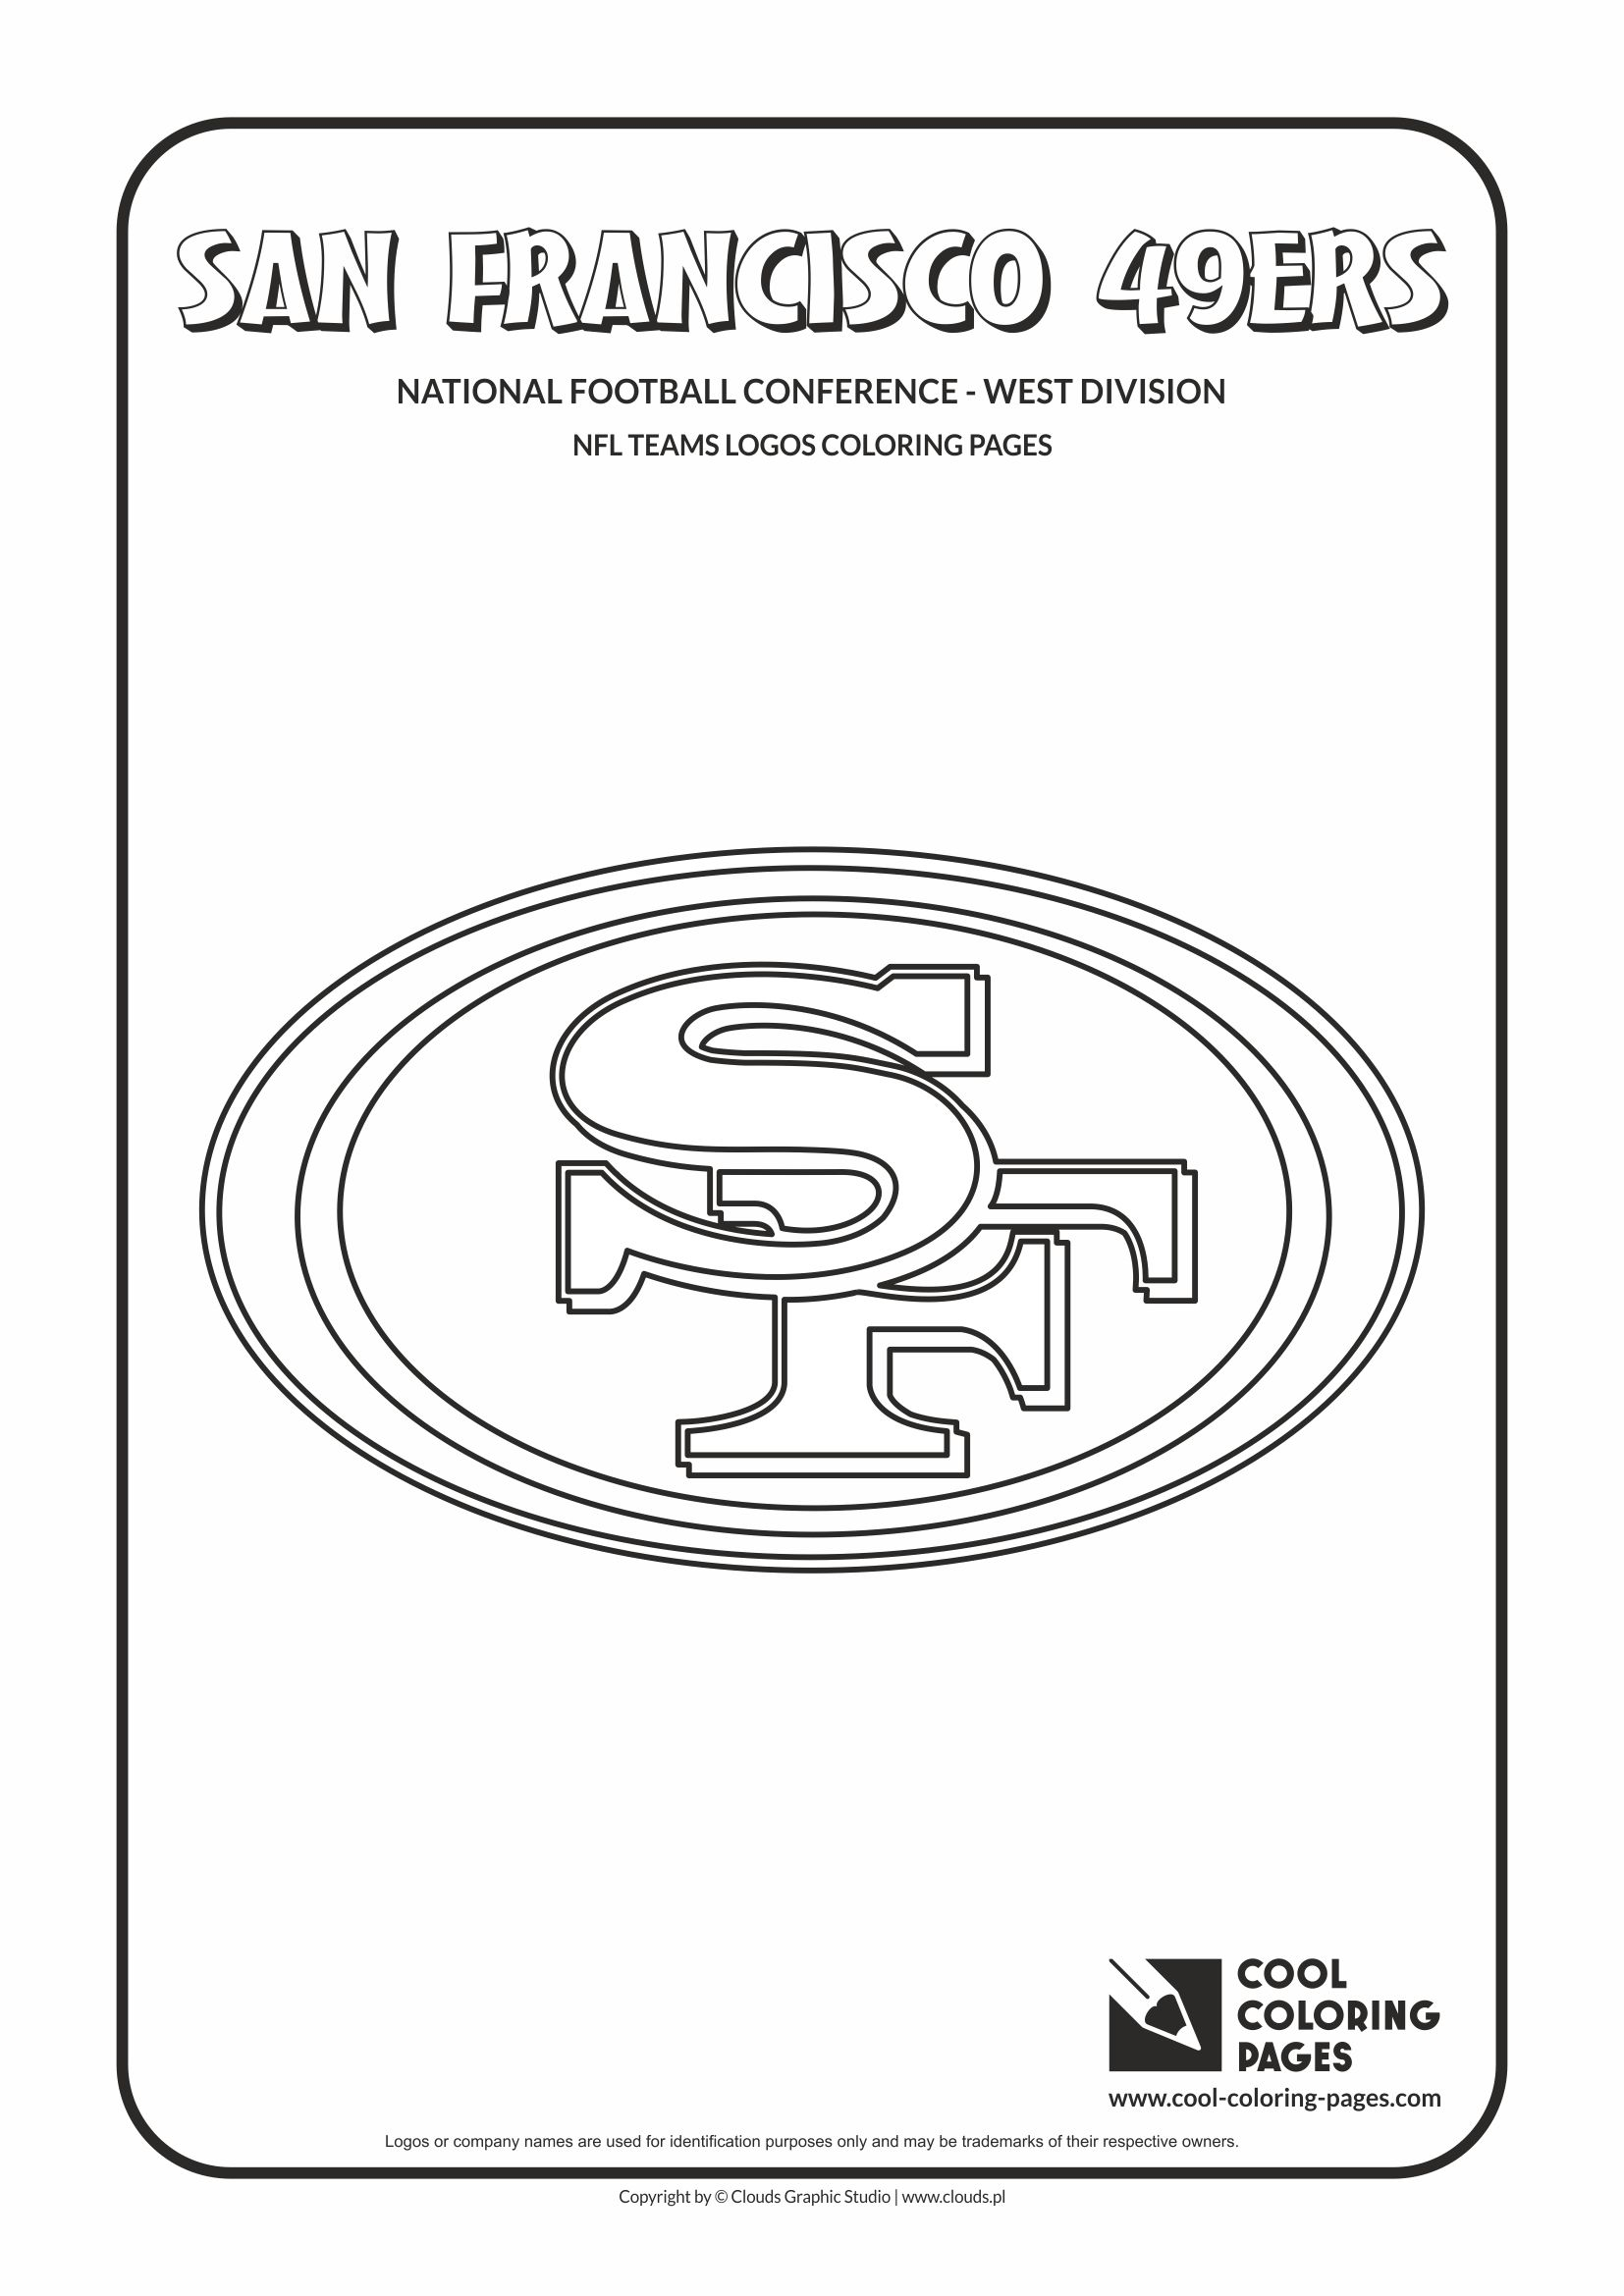 cool coloring pages nfl american football clubs logos national football conference west division - Nfl Football Logos Coloring Pages